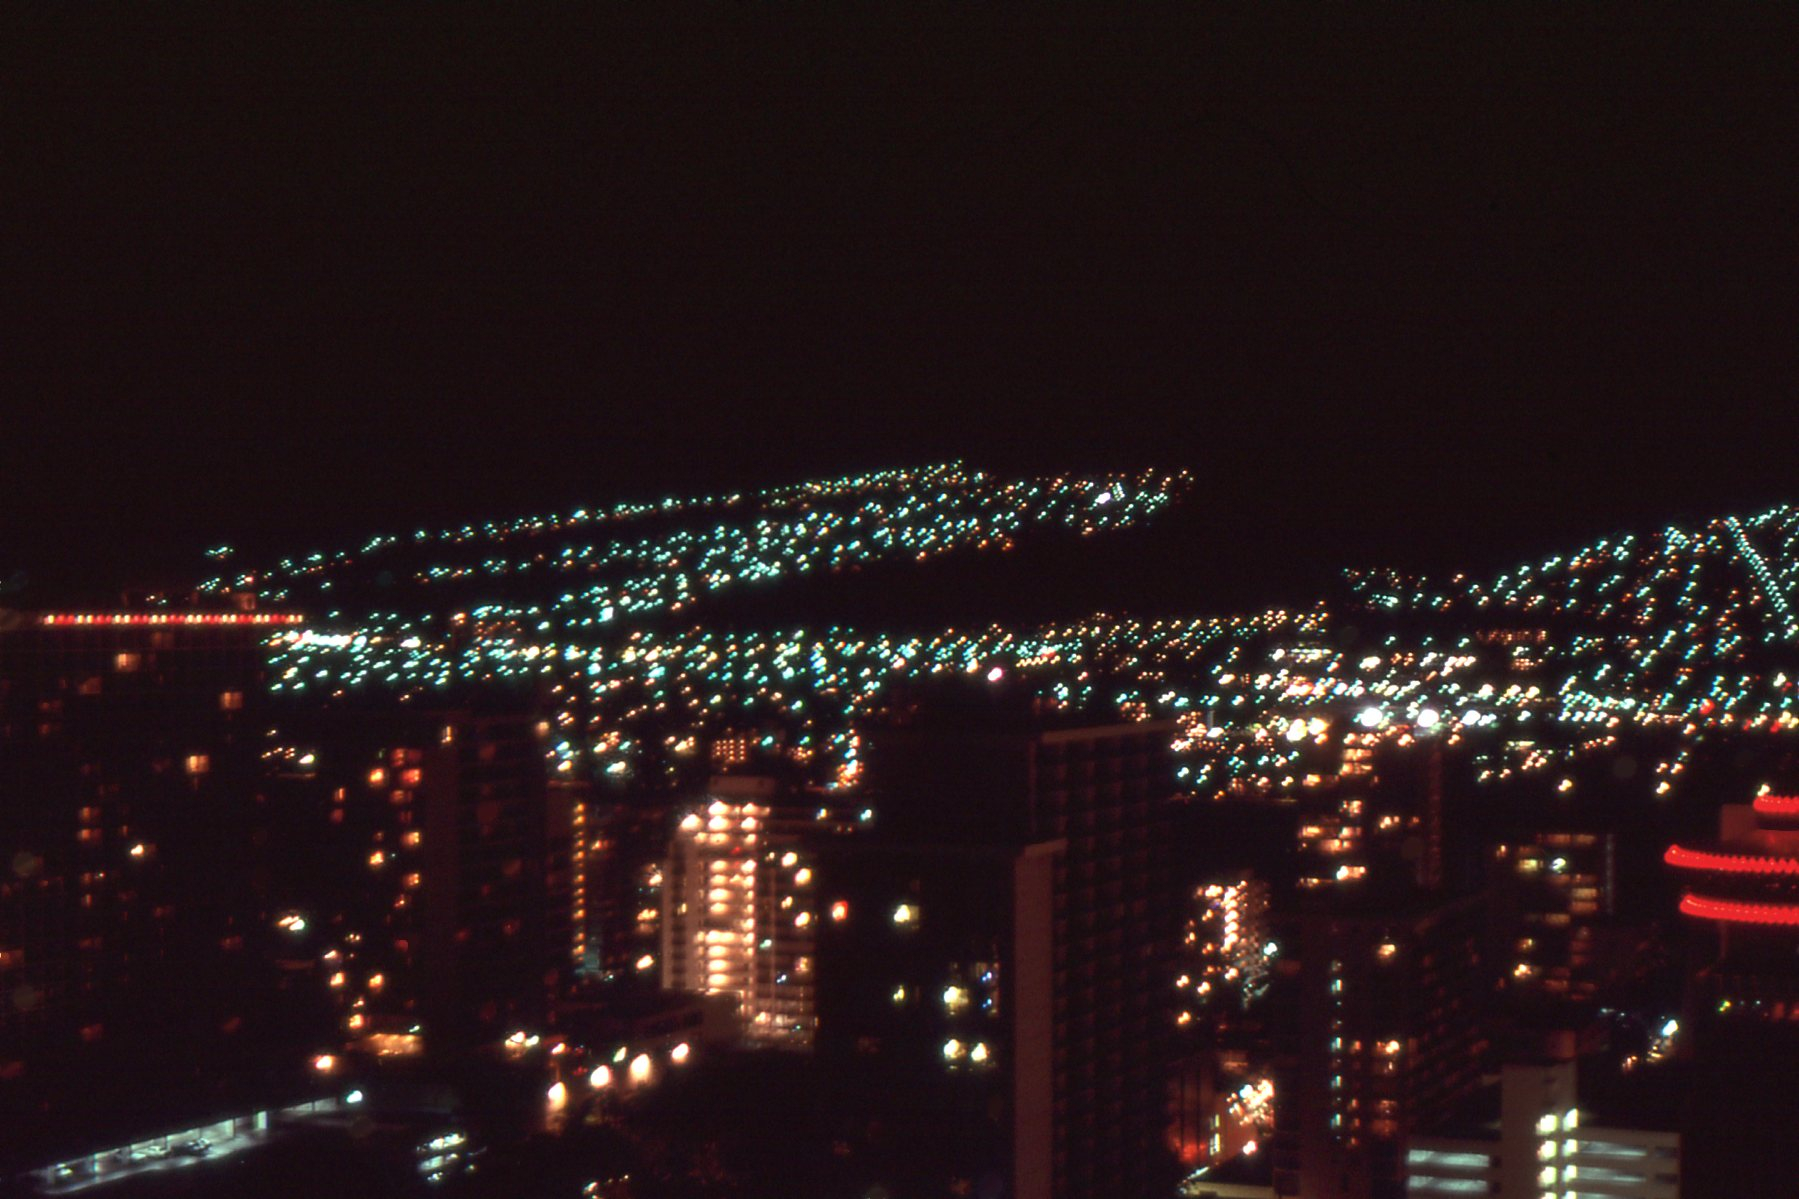 Honoluluatnight